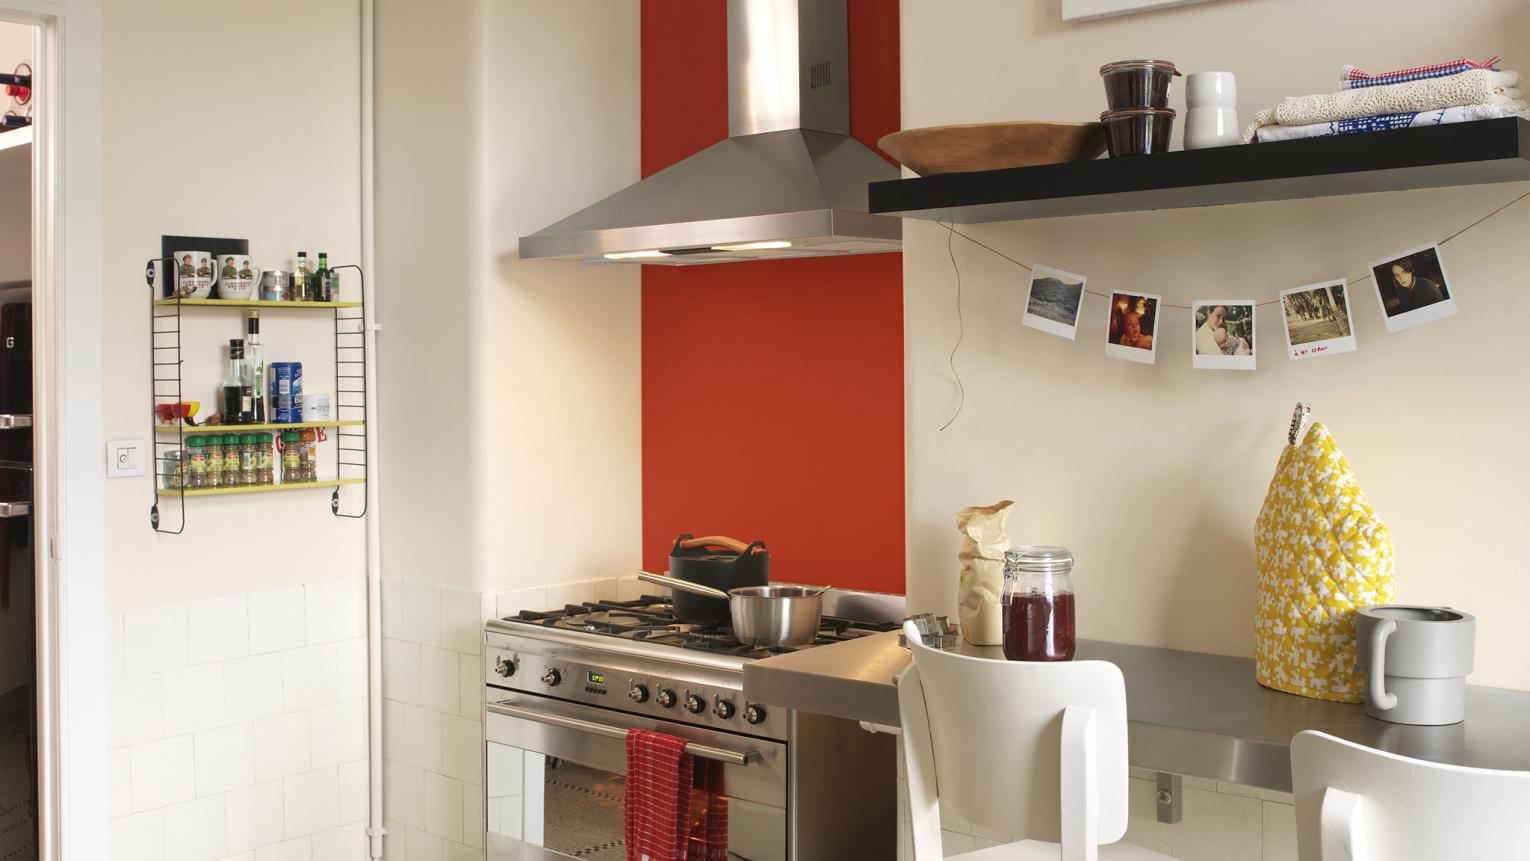 Neutral kitchen with one bright red wall